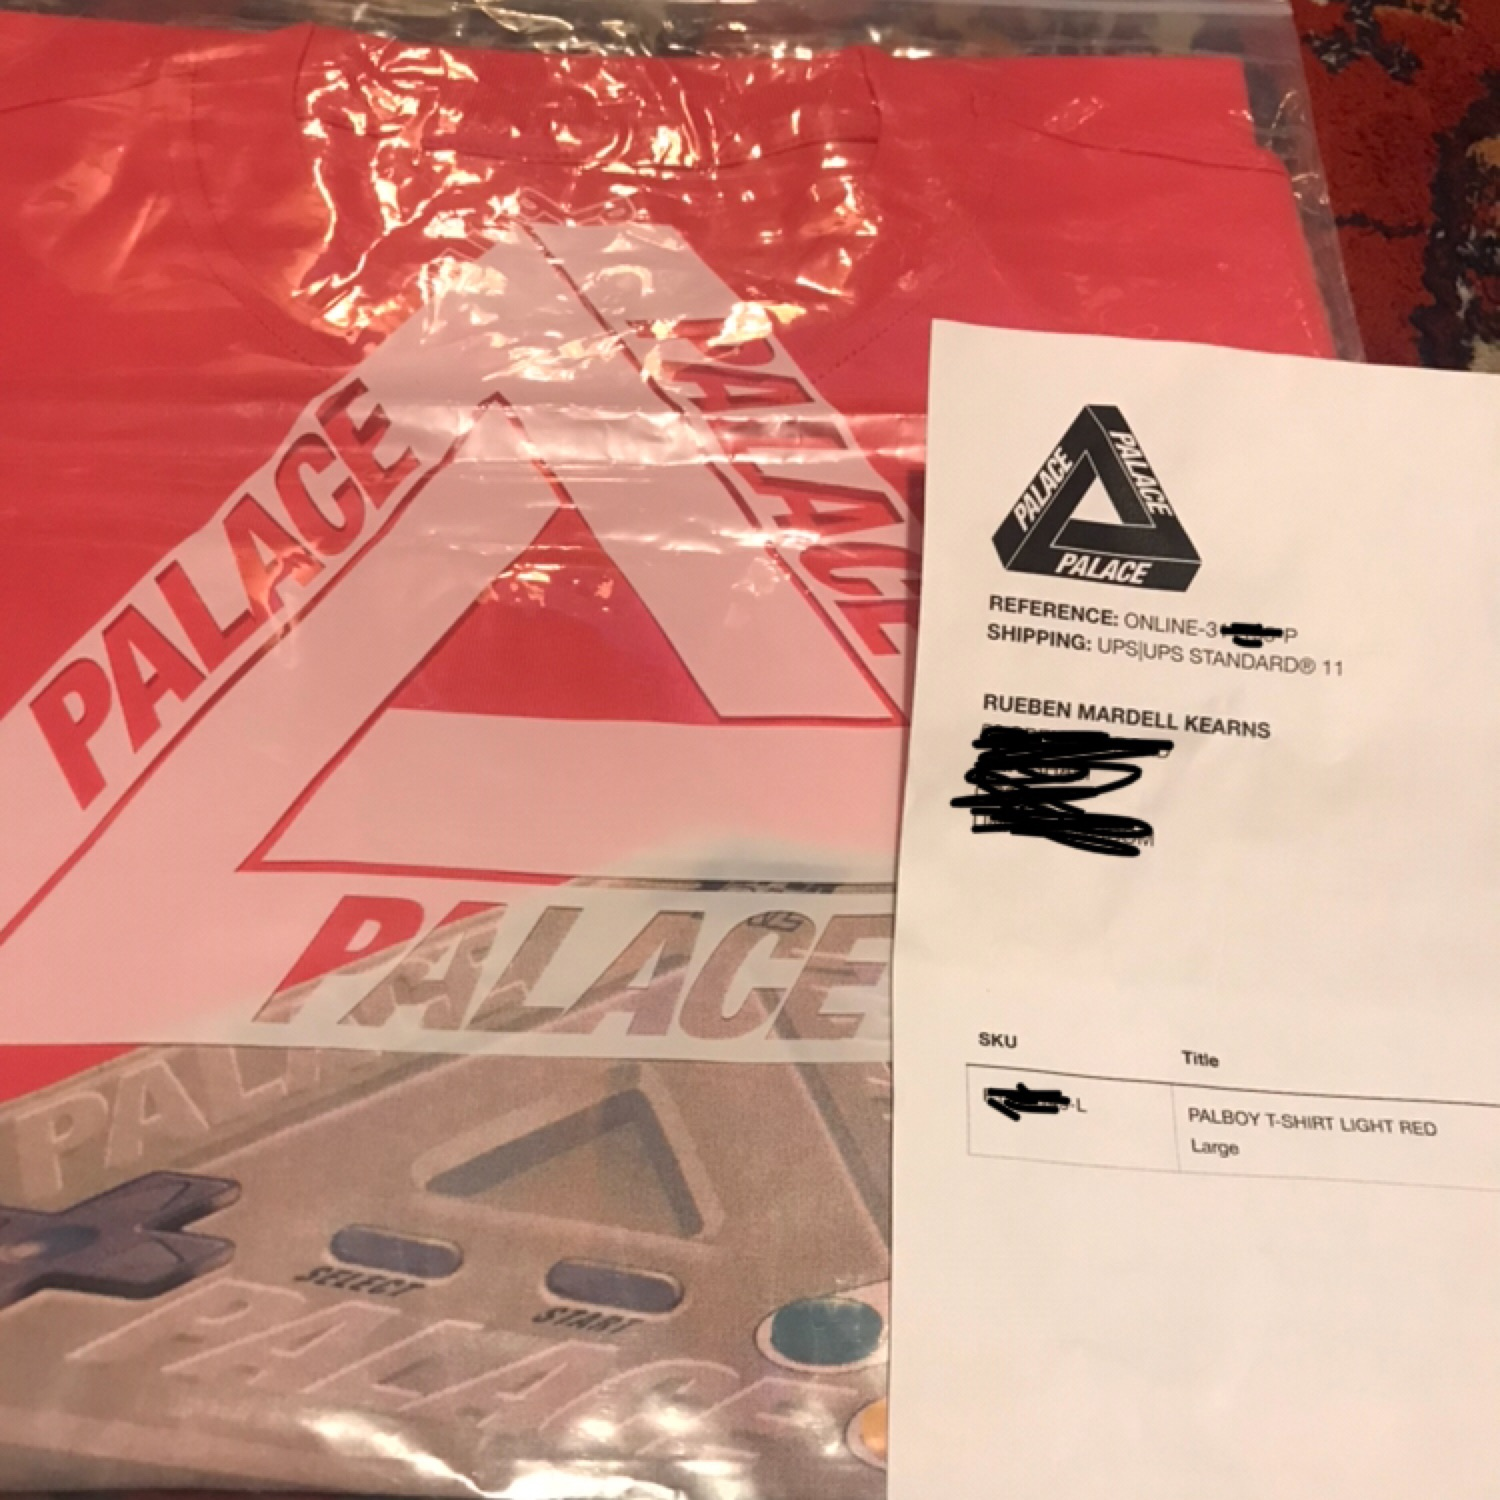 Palace Skateboards Palboy Tee/Light Red/Large